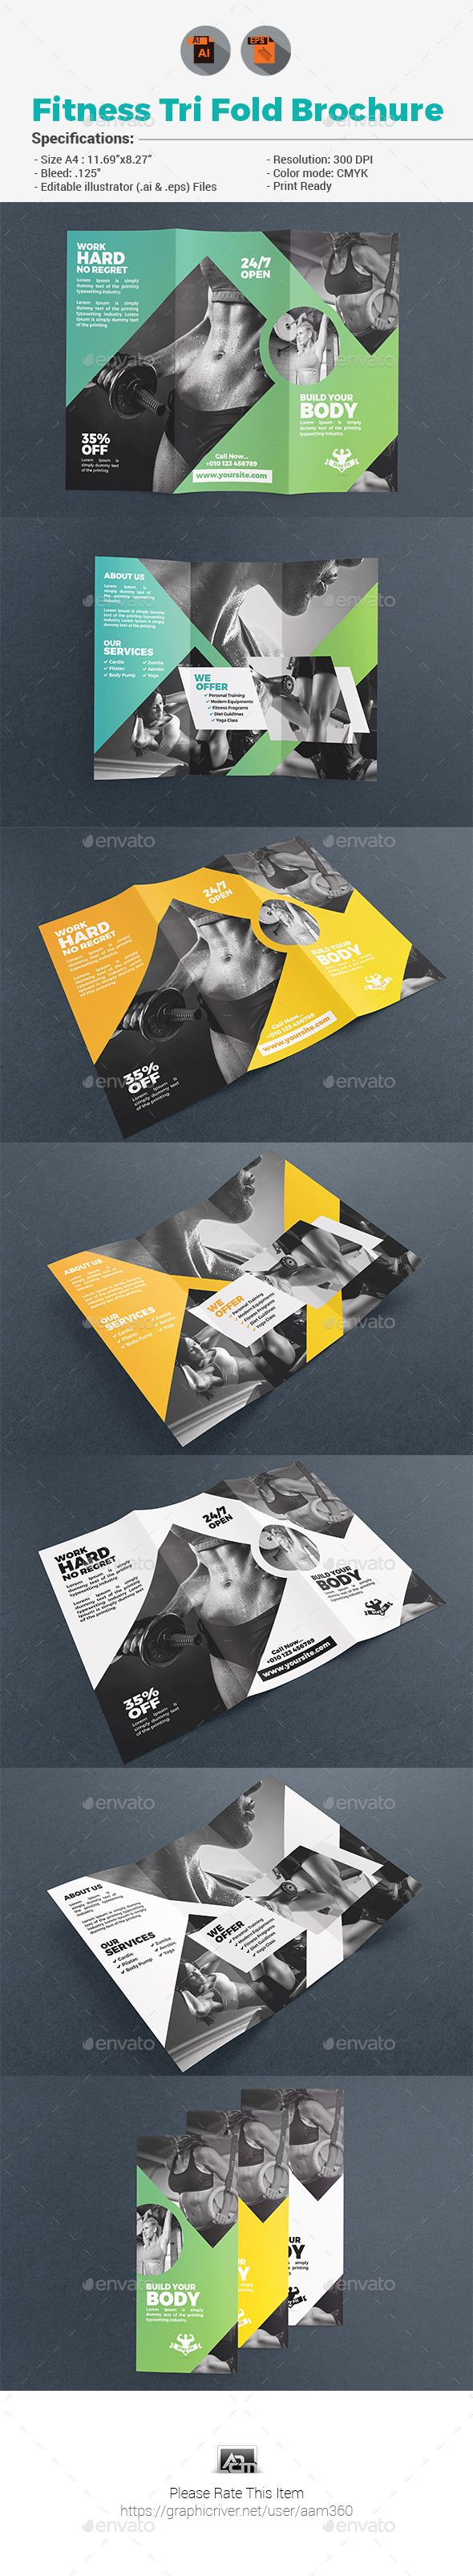 #Fitness Tri Fold #Brochure - Corporate #Flyers Download here: https://graphicriver.net/item/fitness-tri-fold-brochure/19513510?ref=alena994